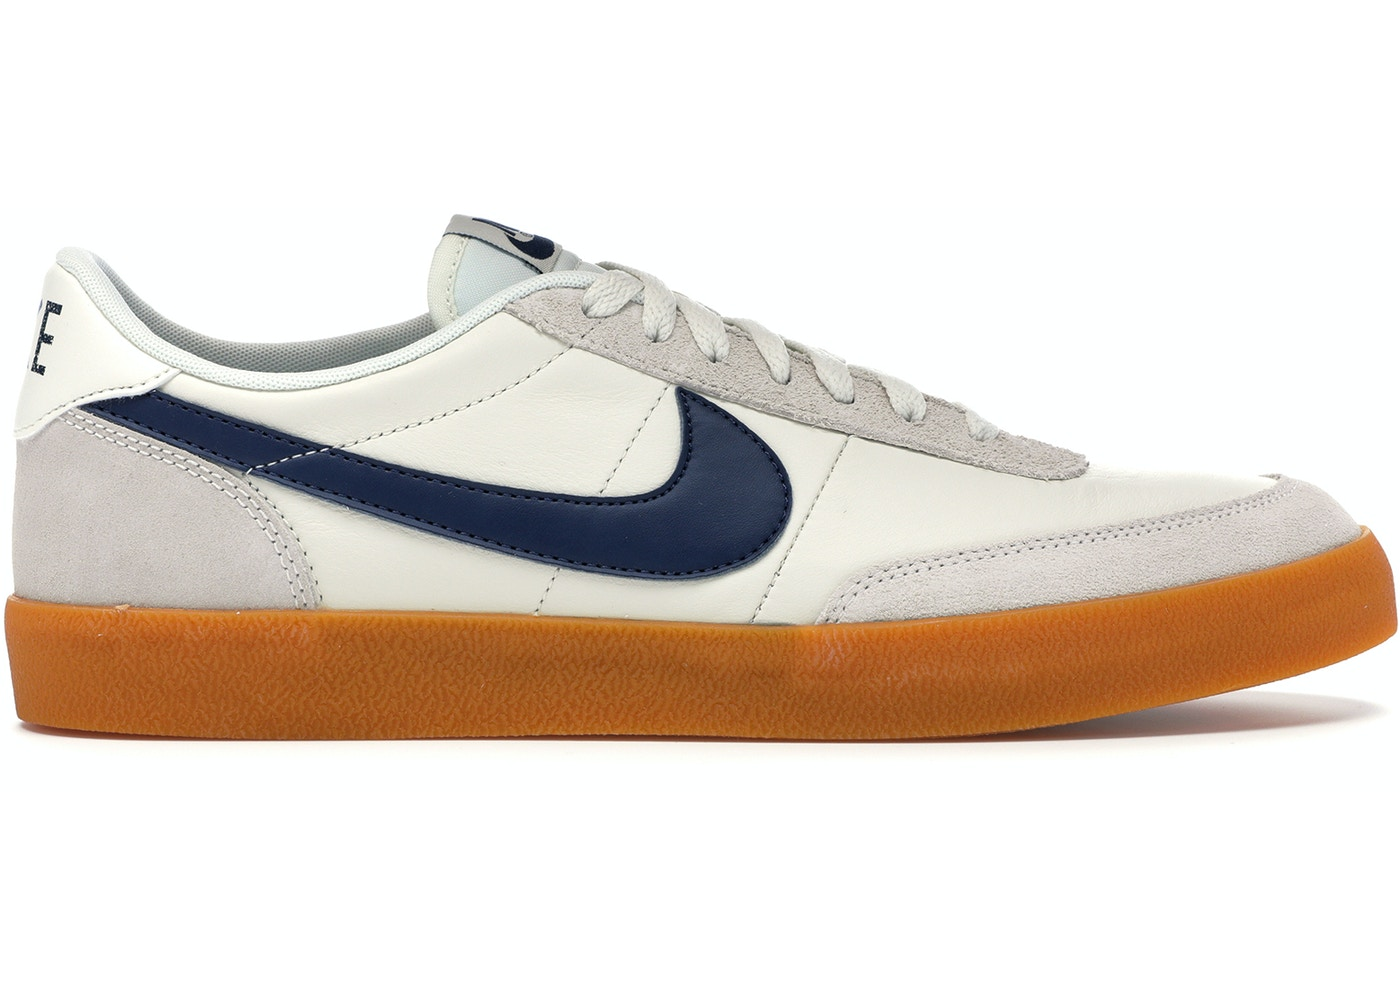 abrelatas datos empujar  Nike Killshot 2 J Crew Sail Midnight Navy - 432997-107